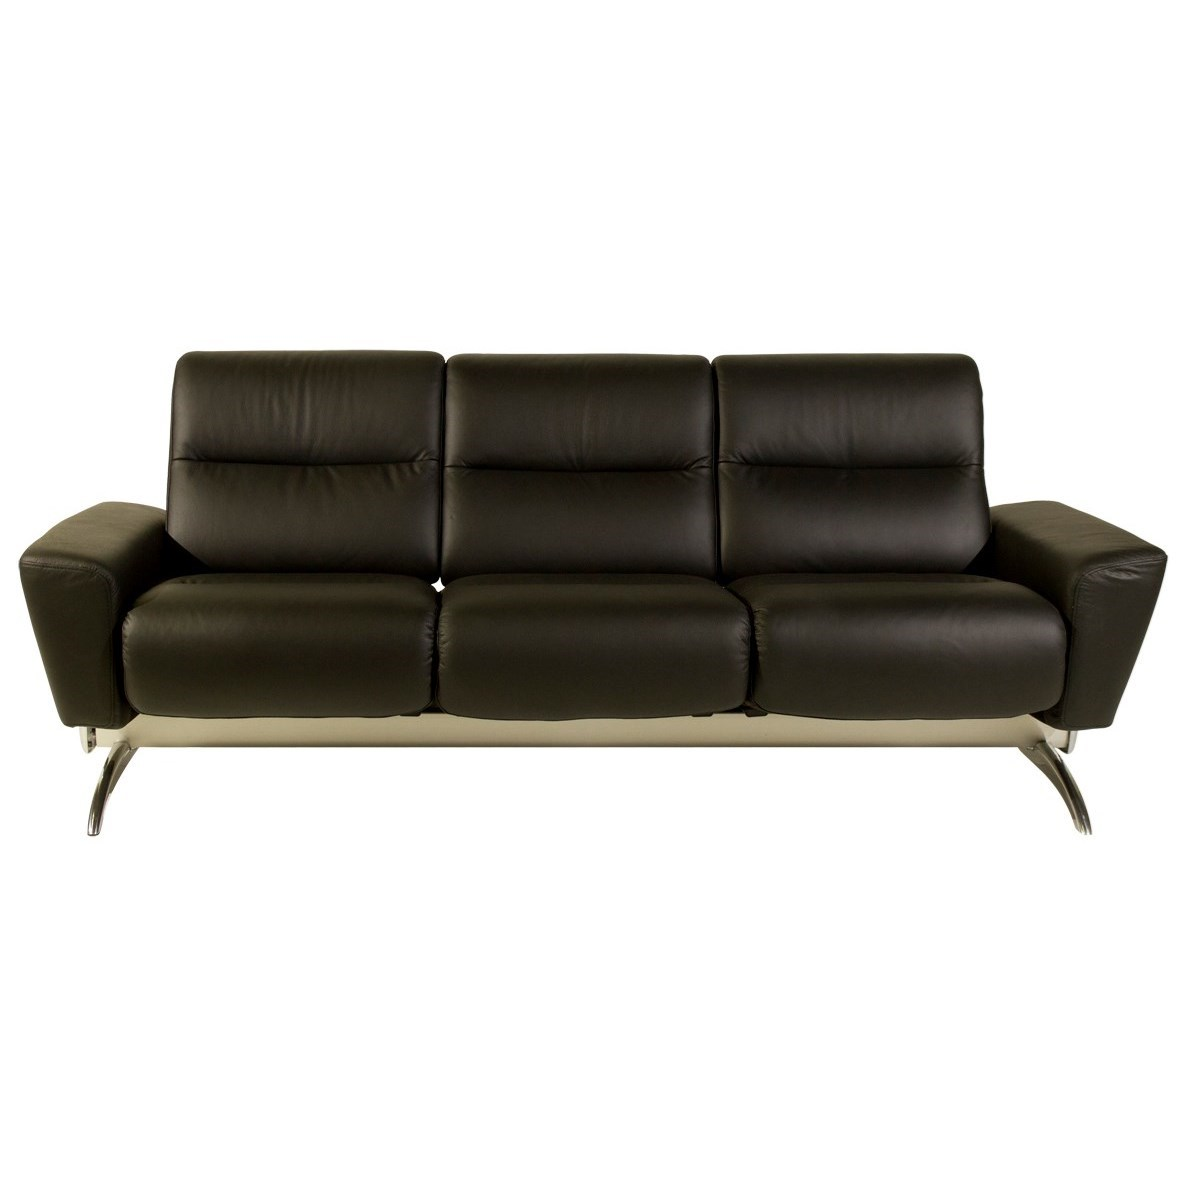 Stressless Sofa Michelle Stressless Stressless You Julia 3-seater Sofa With